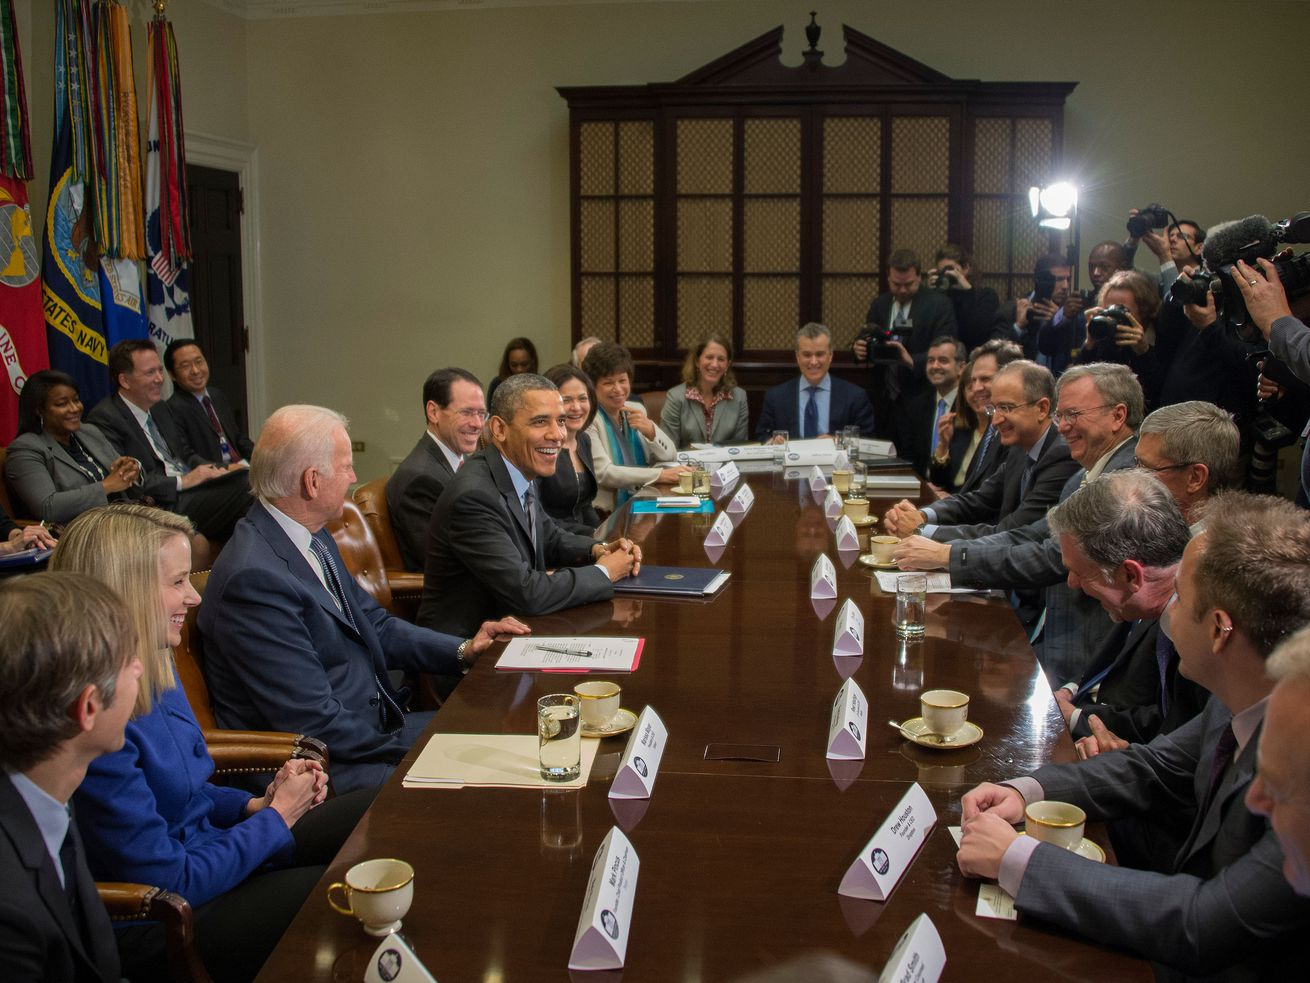 Tech executives meet with members of the Obama administration at a large conference table.